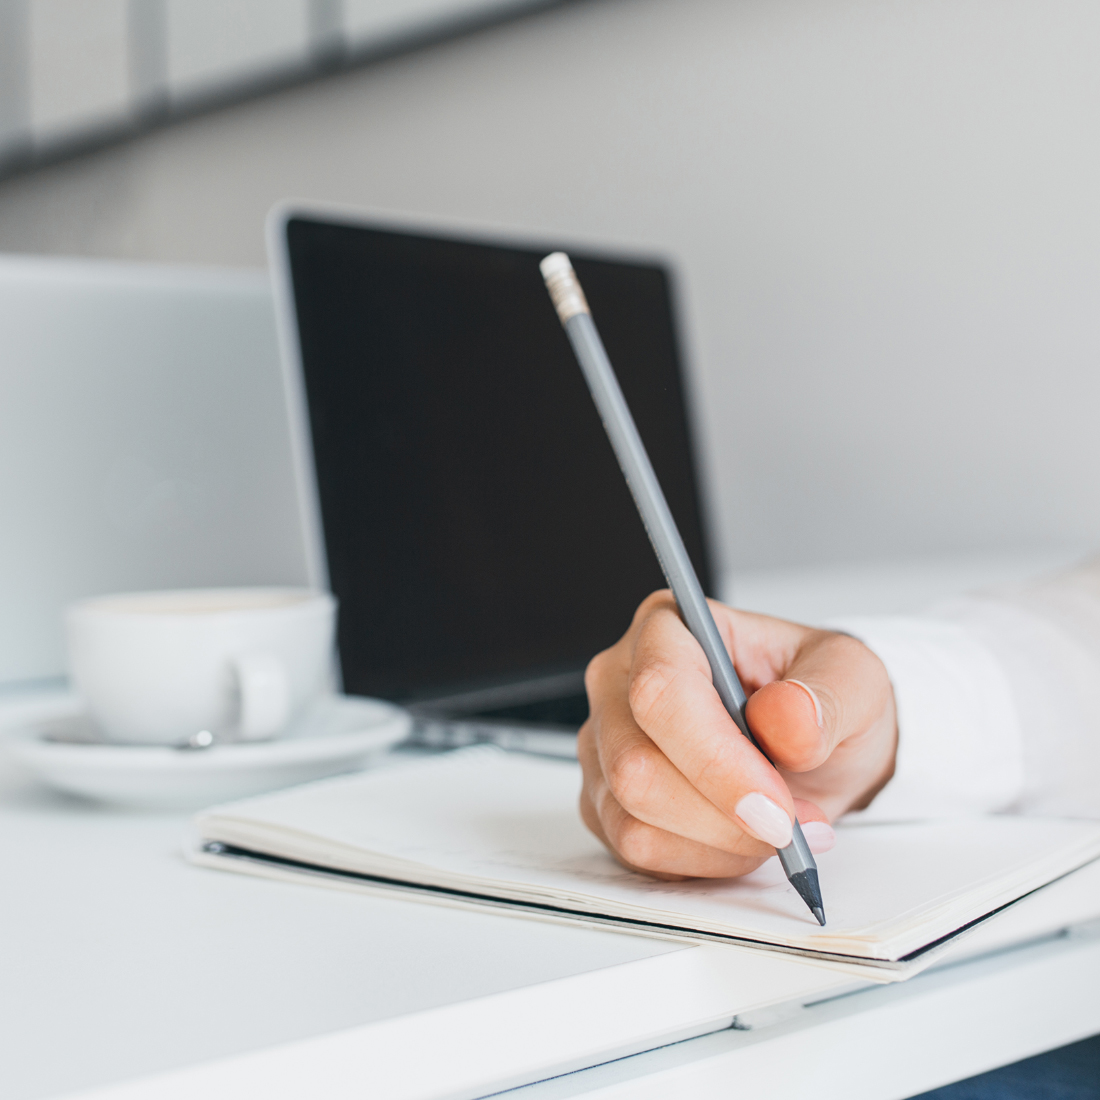 Time to put pen to paper and work on your Marketing Mix!